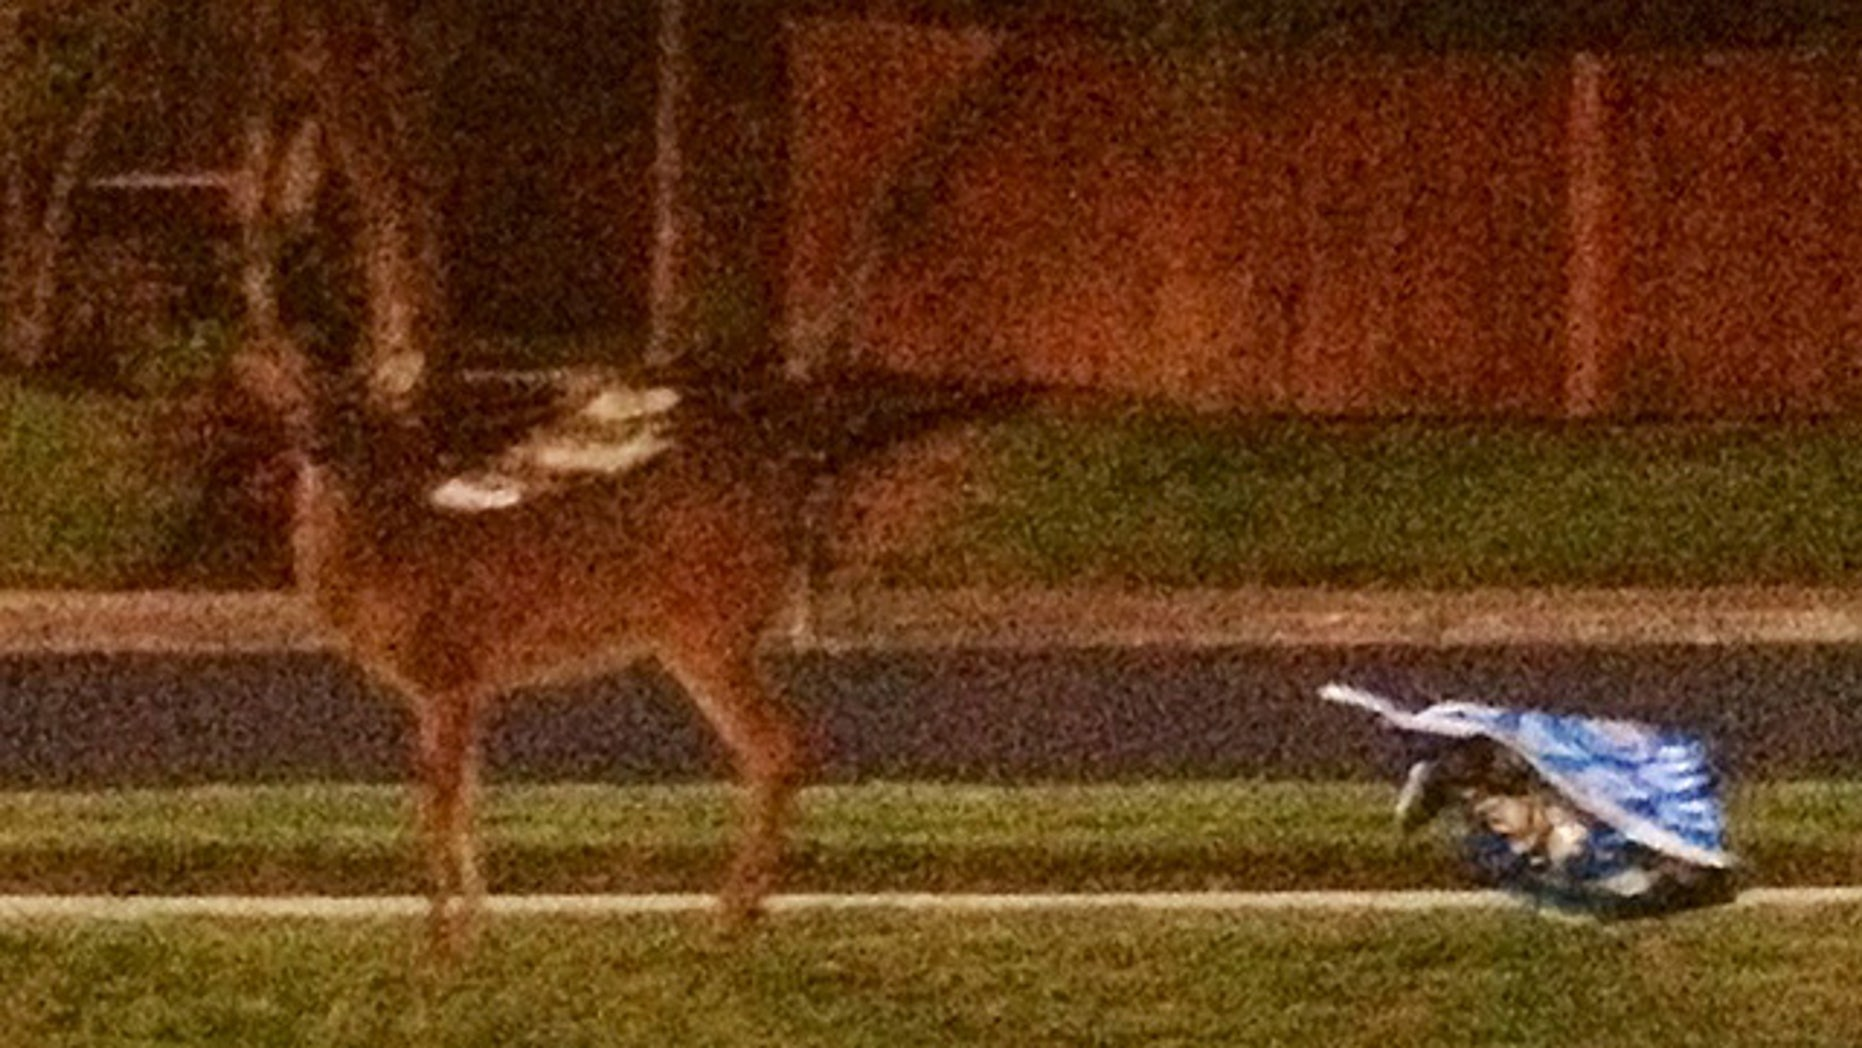 The offending deer, caught on camera by Tom Priem's wife seconds after destroying the Obama campaign sign. (Courtesy: Tom and Beth Priem)